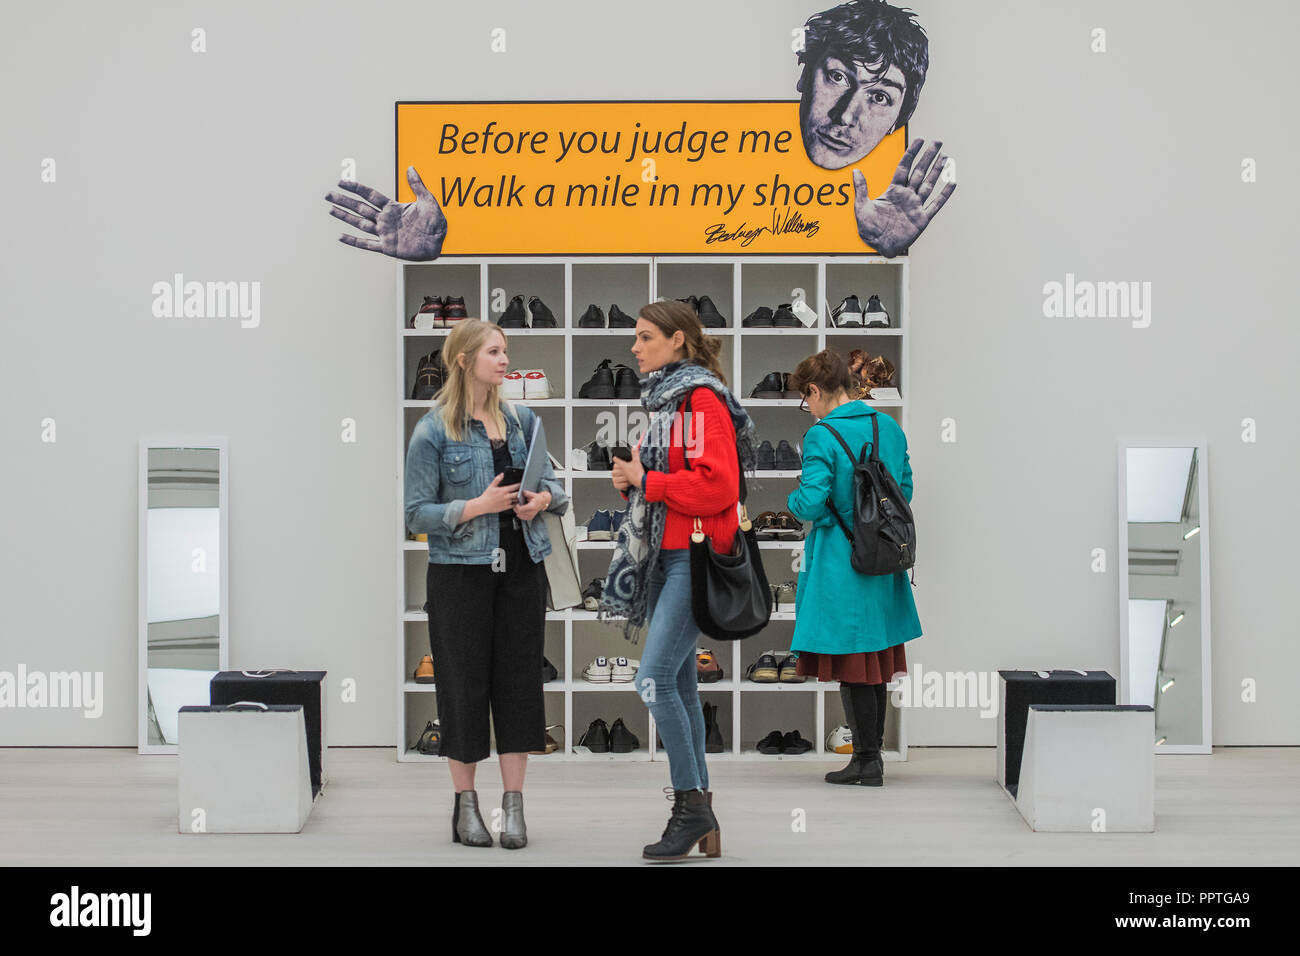 London, UK. 27th Sep 2018. Bedwyr Williams' Walk A Mile In My Shoes, a display case with 45 pairs of his own size 13 shoes. He invites the audience to share in his own 'problems of podietry ' by trying them on - Black Mirror the new exhibition at the Saatchi Gallery about art's role in social satire - featuring the work of 26 contemporary artists. It runs from 28 Sept 18 to 13 Jan 19. Credit: Guy Bell/Alamy Live News Stock Photo